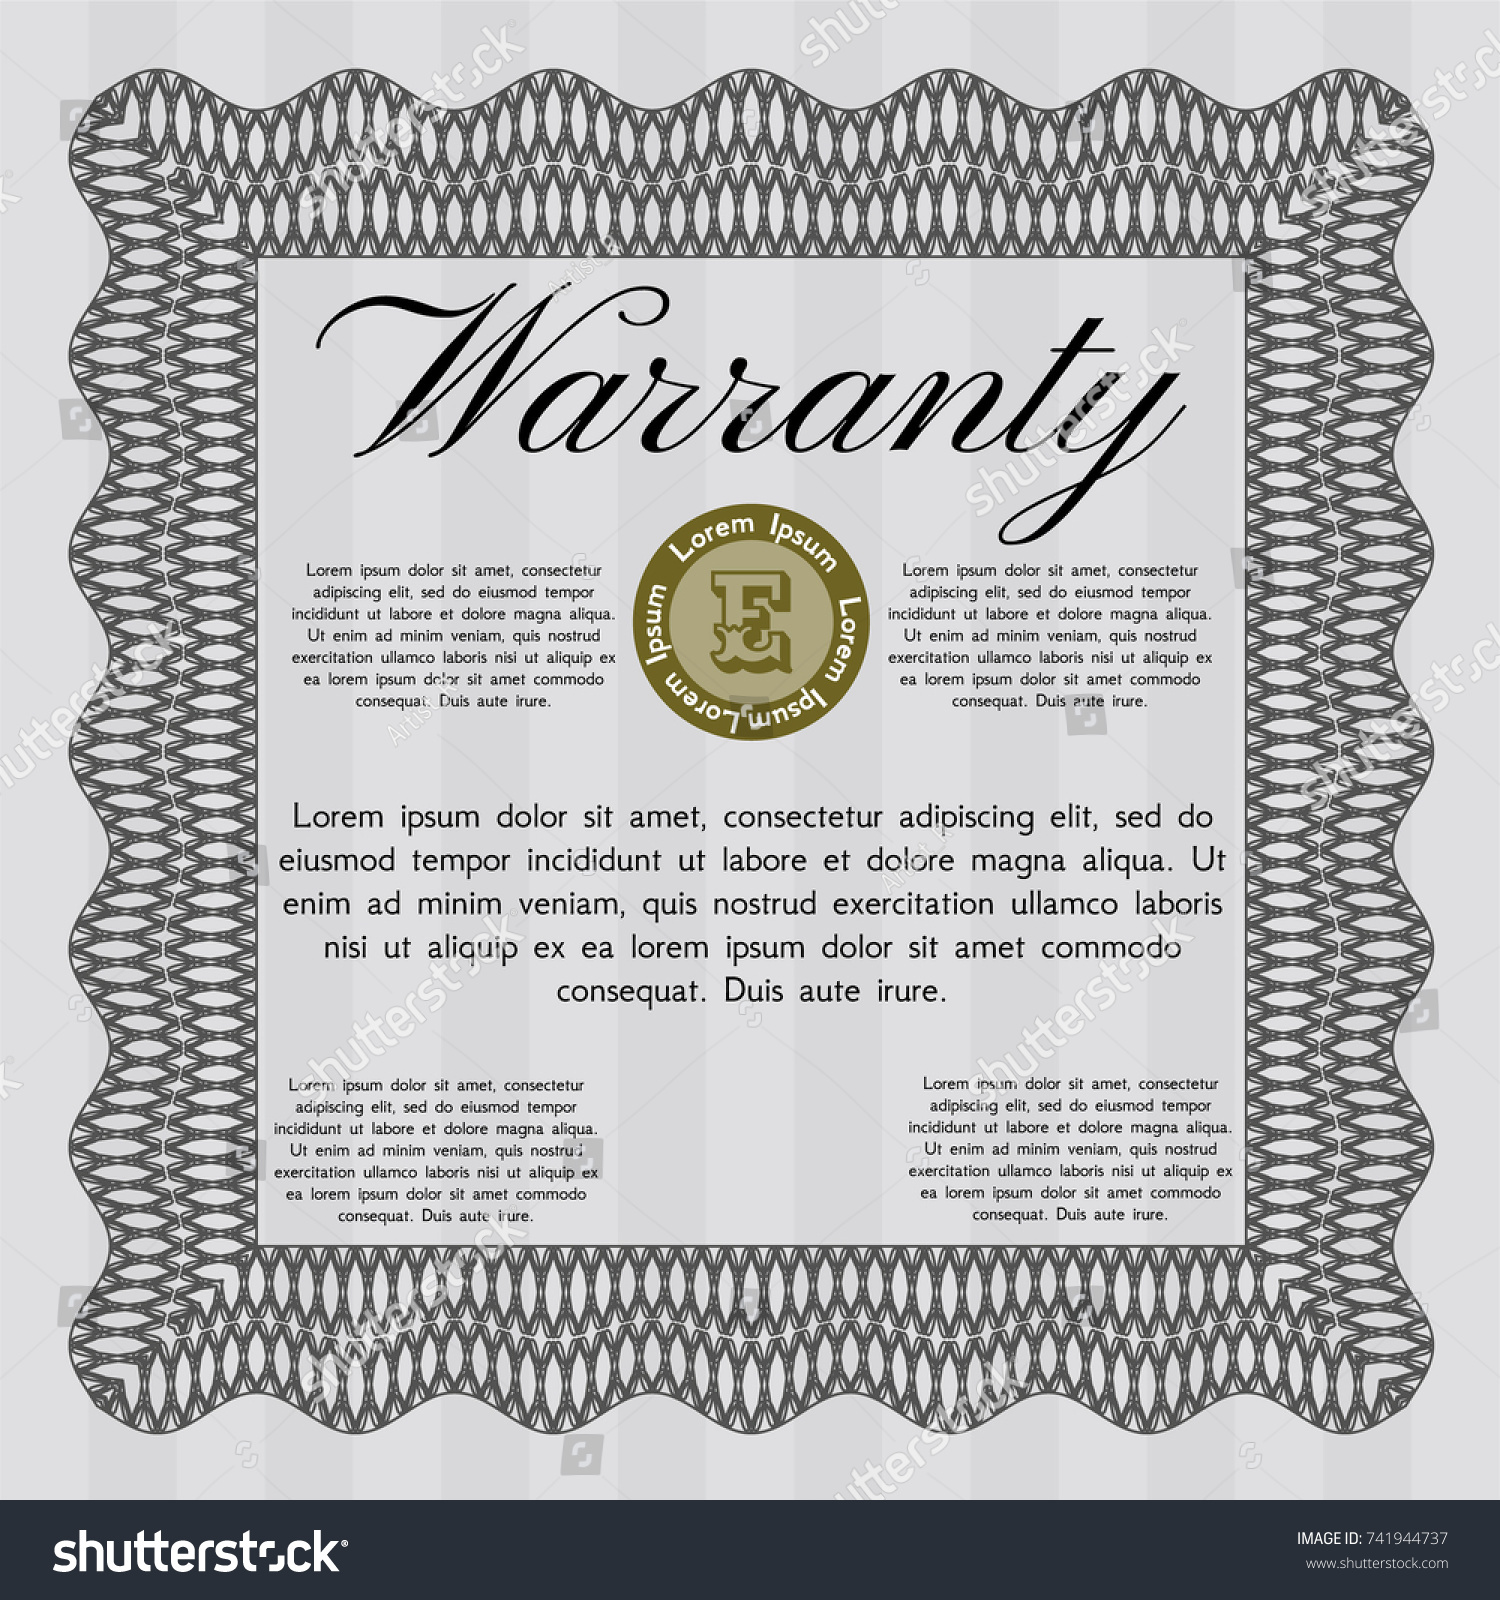 Grey formal warranty certificate template complex stock vector grey formal warranty certificate template complex stock vector 741944737 shutterstock 1betcityfo Choice Image